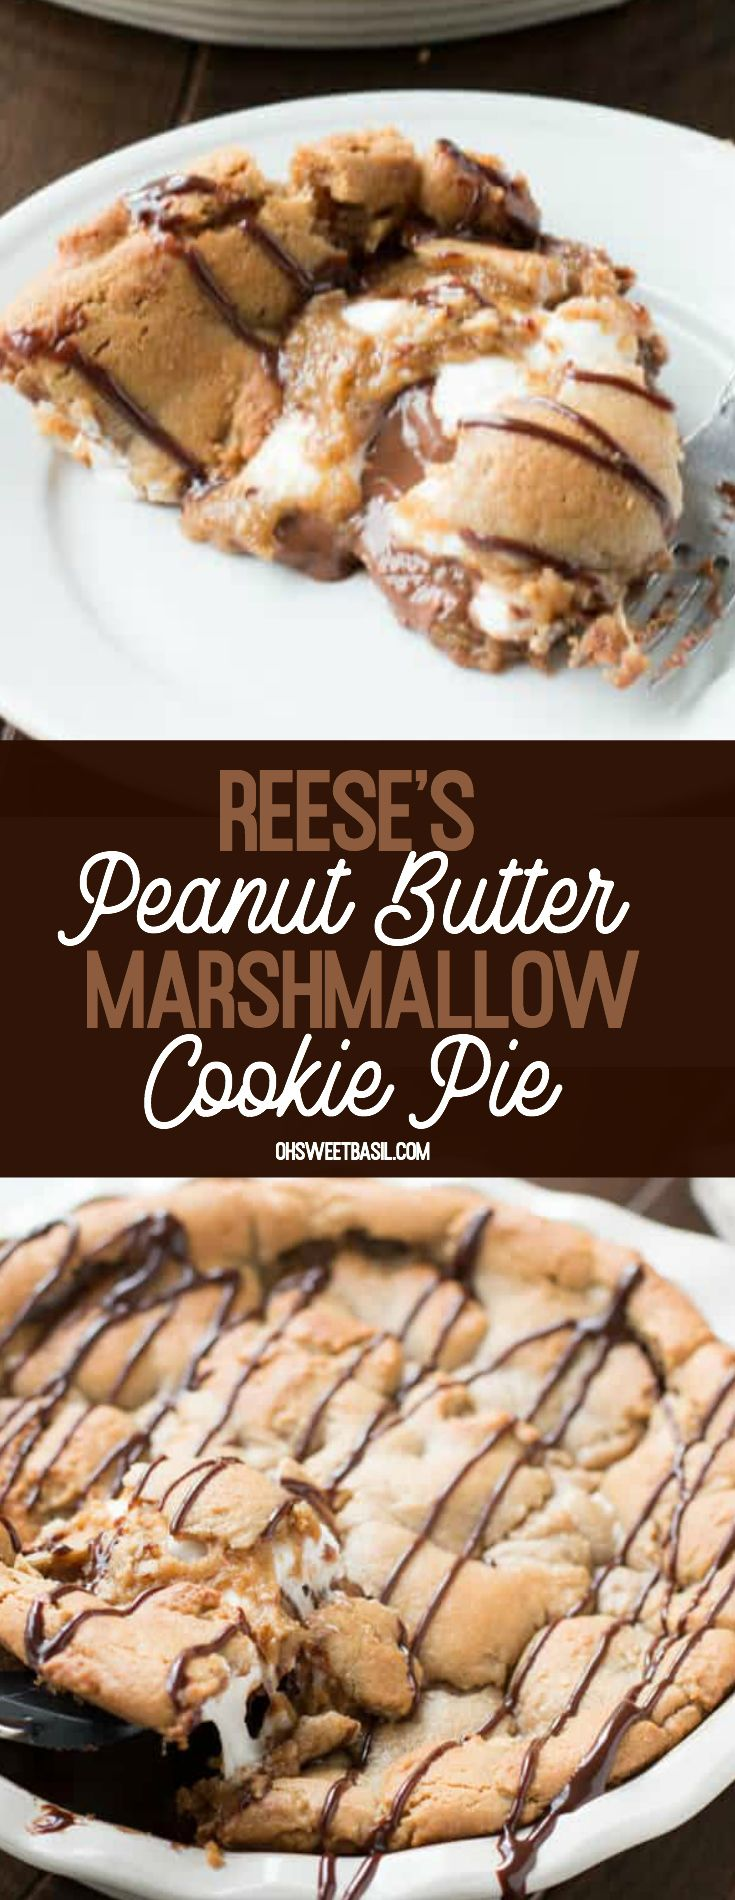 This Reese's Peanut Butter Marshmallow Cookie Pie …